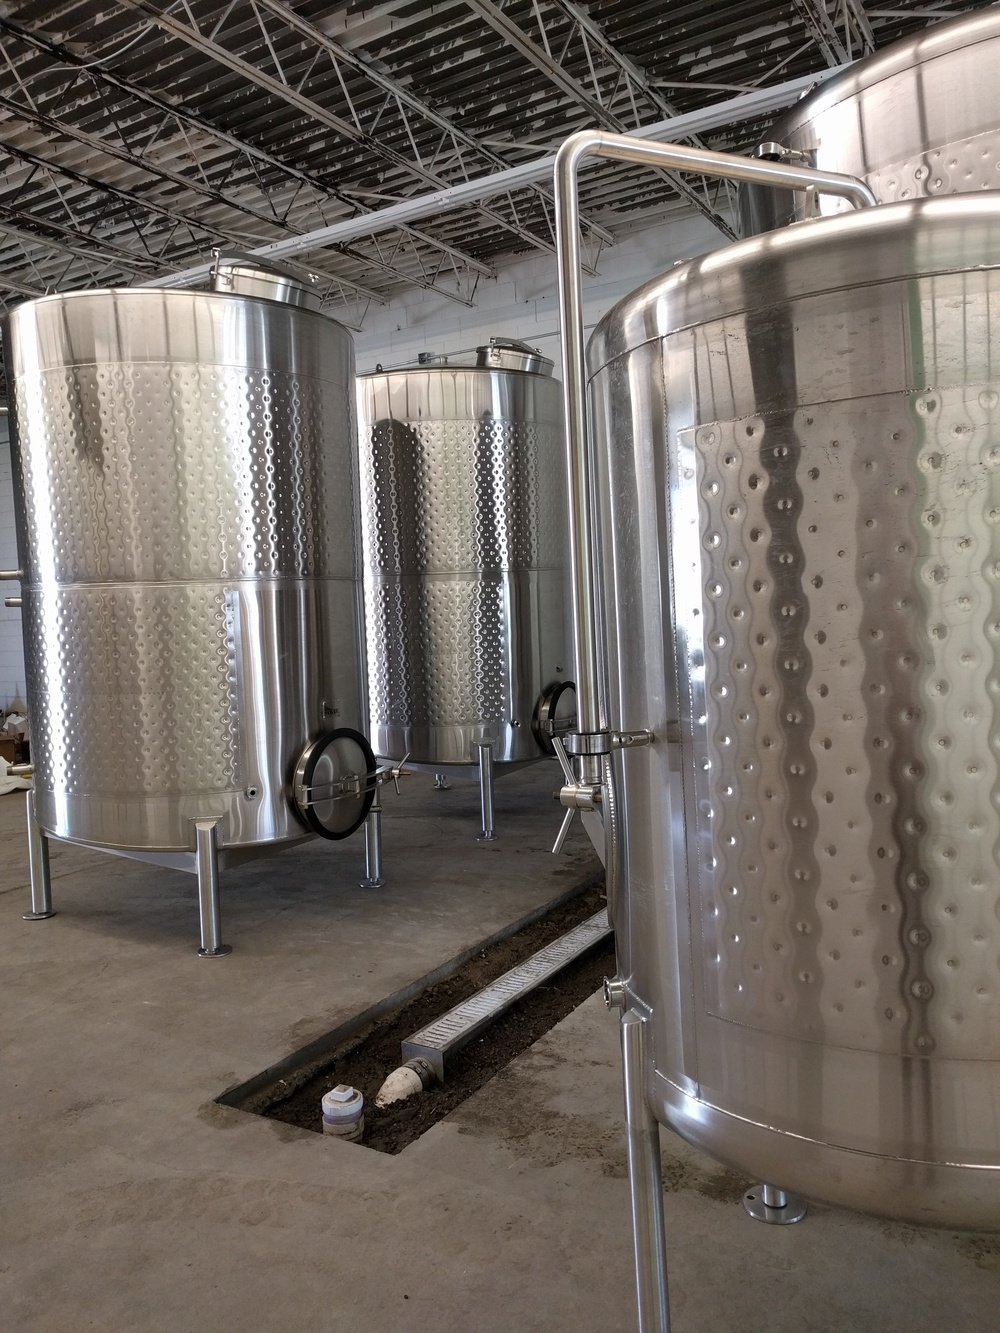 Look at those pretty fermentation tanks and unfinished floor drain!